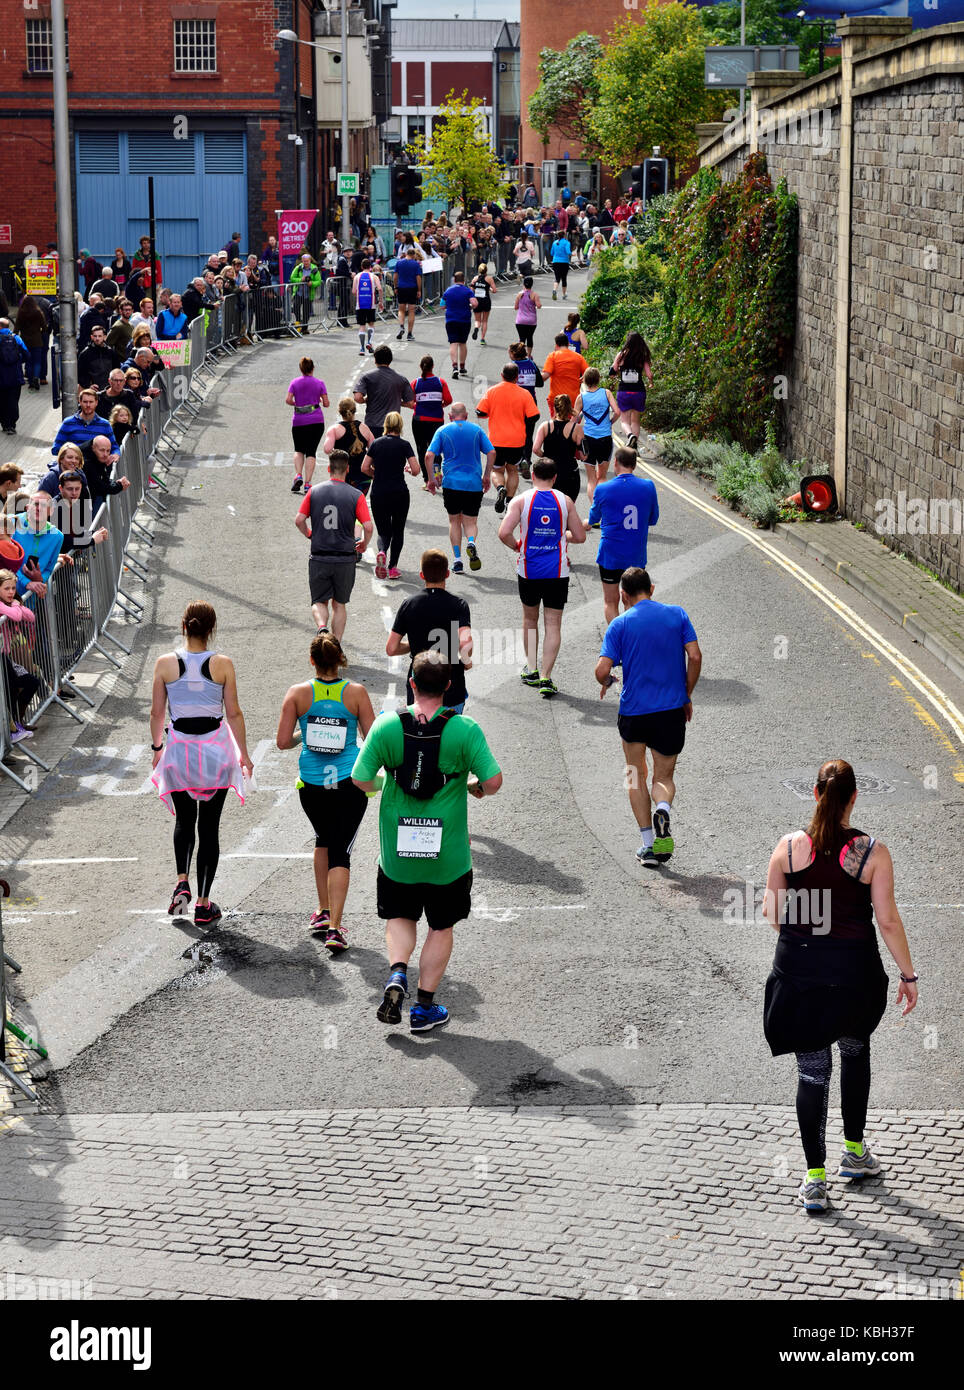 Runners in Simplyhealth half marathon race with crowd watching in the city centre of Bristol, UK - Stock Image